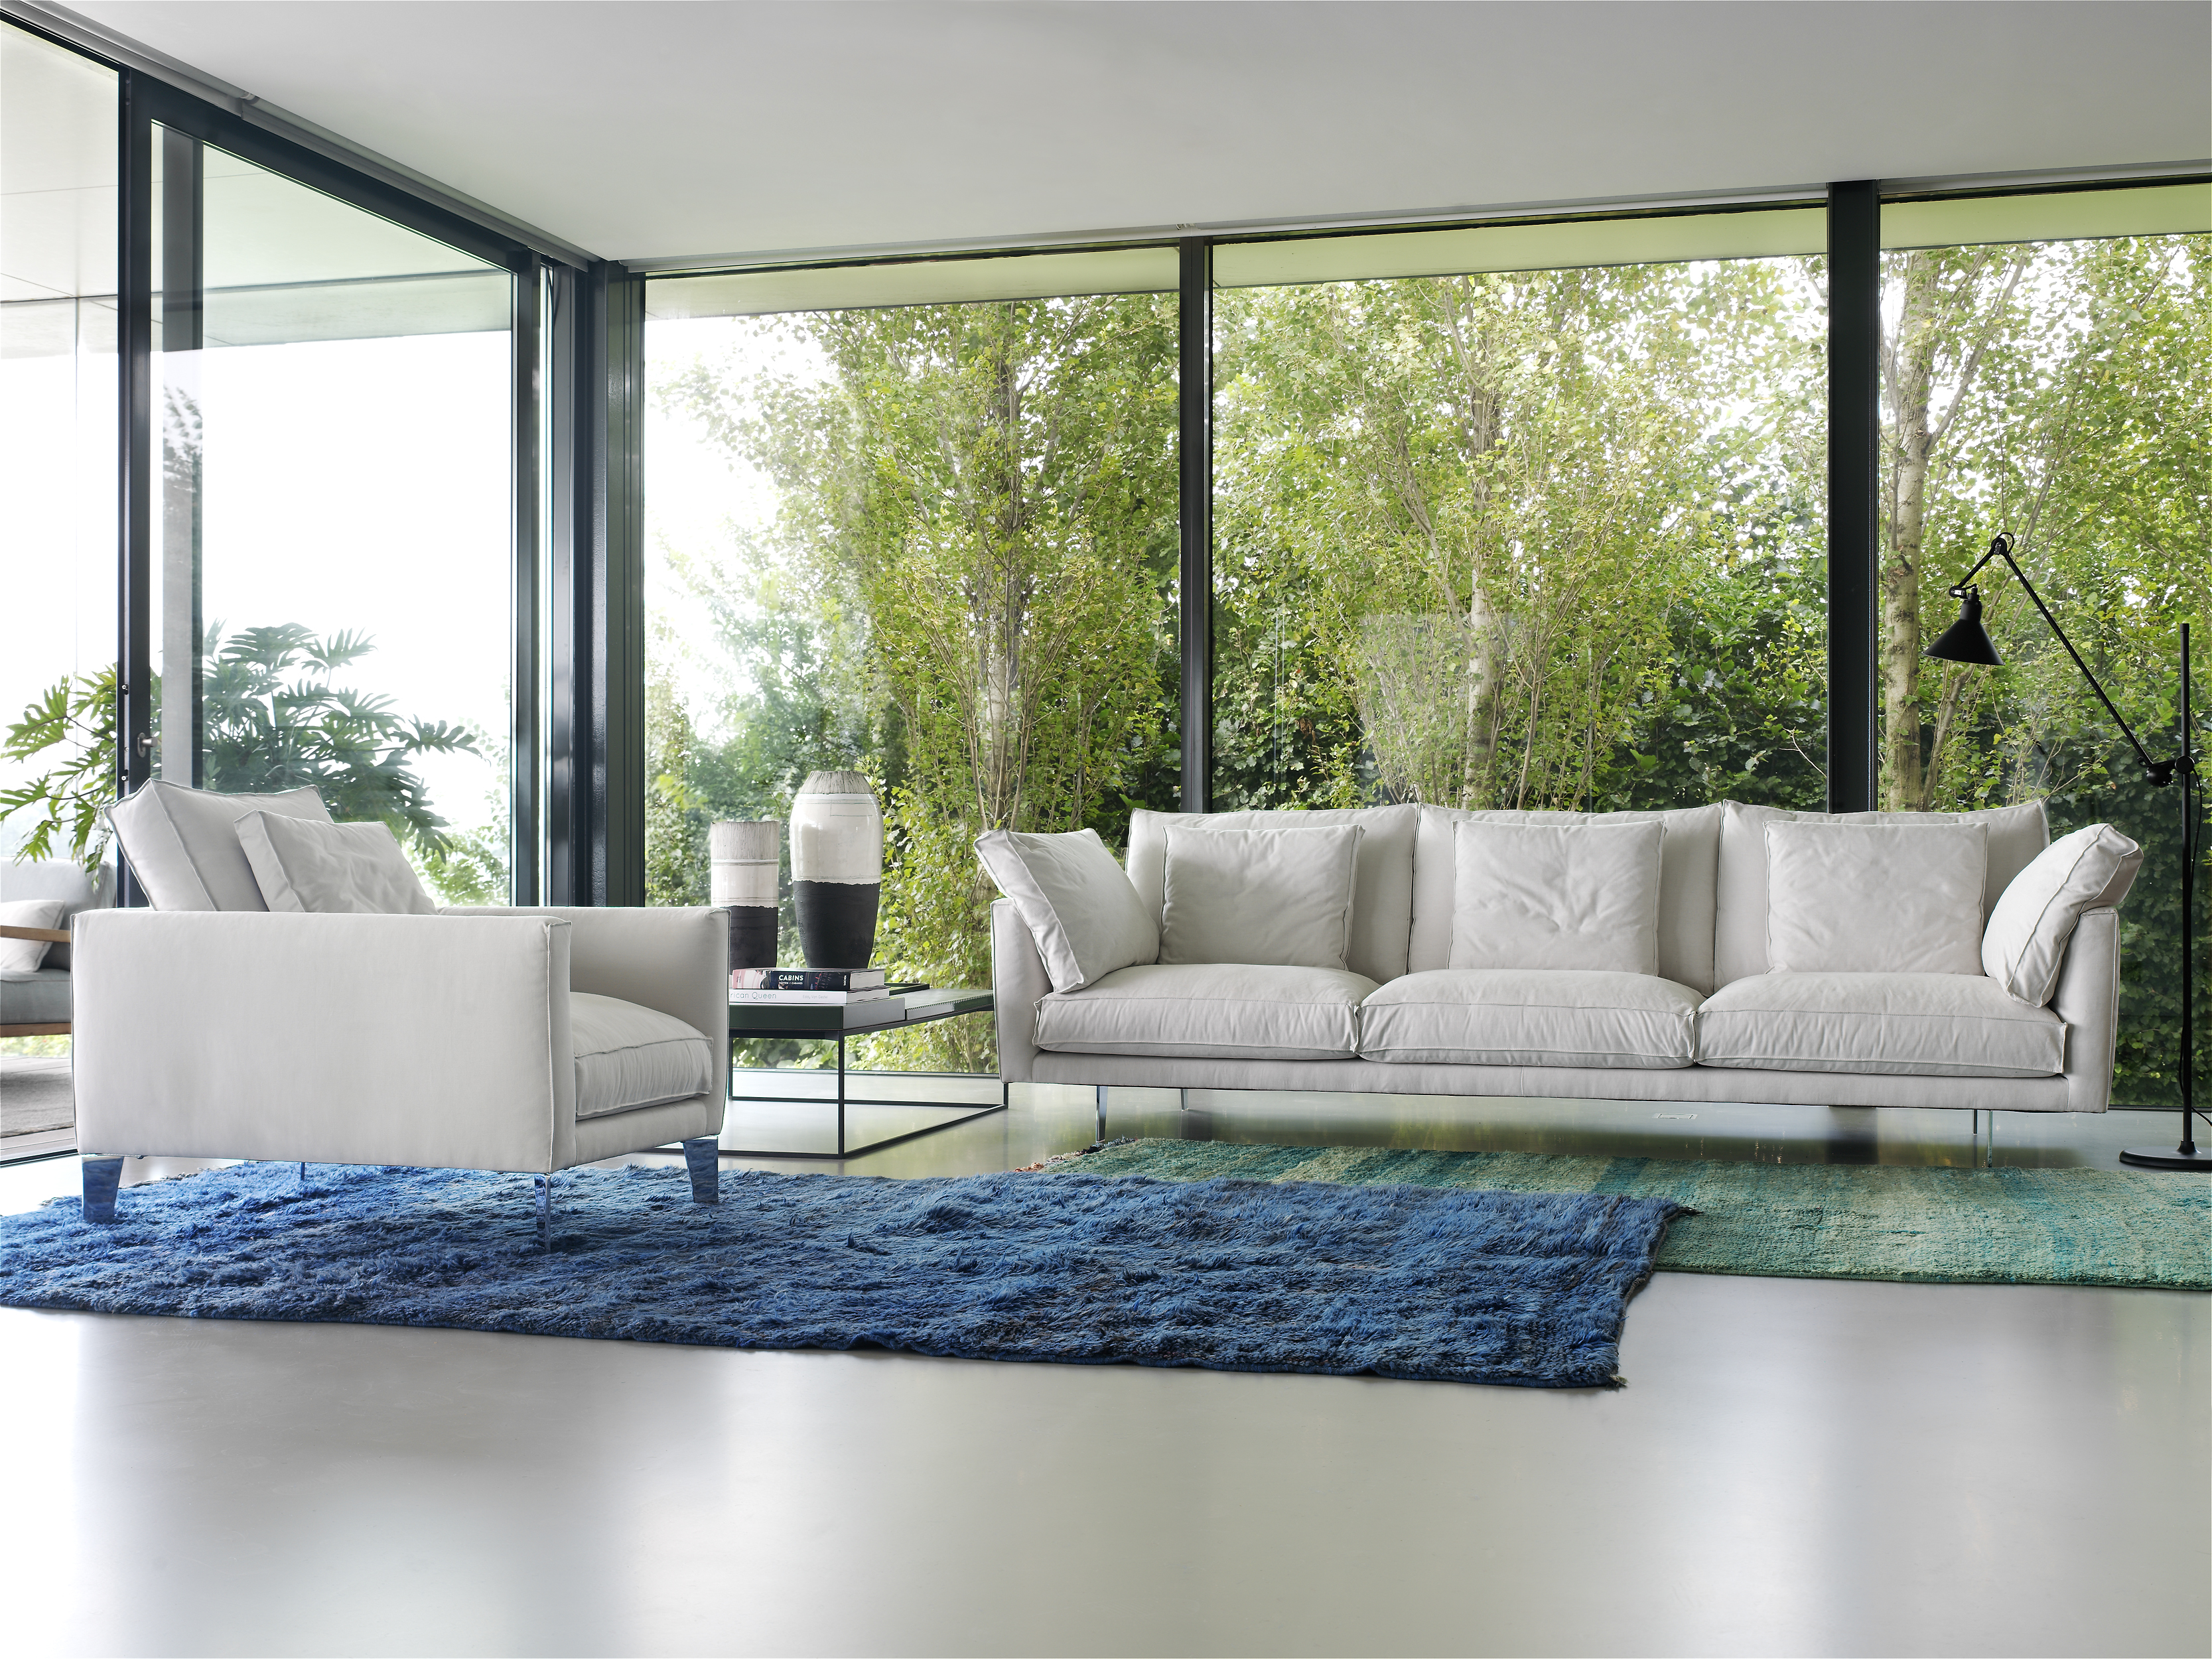 superb intex pull out sofa gallery-Modern Intex Pull Out sofa Decoration